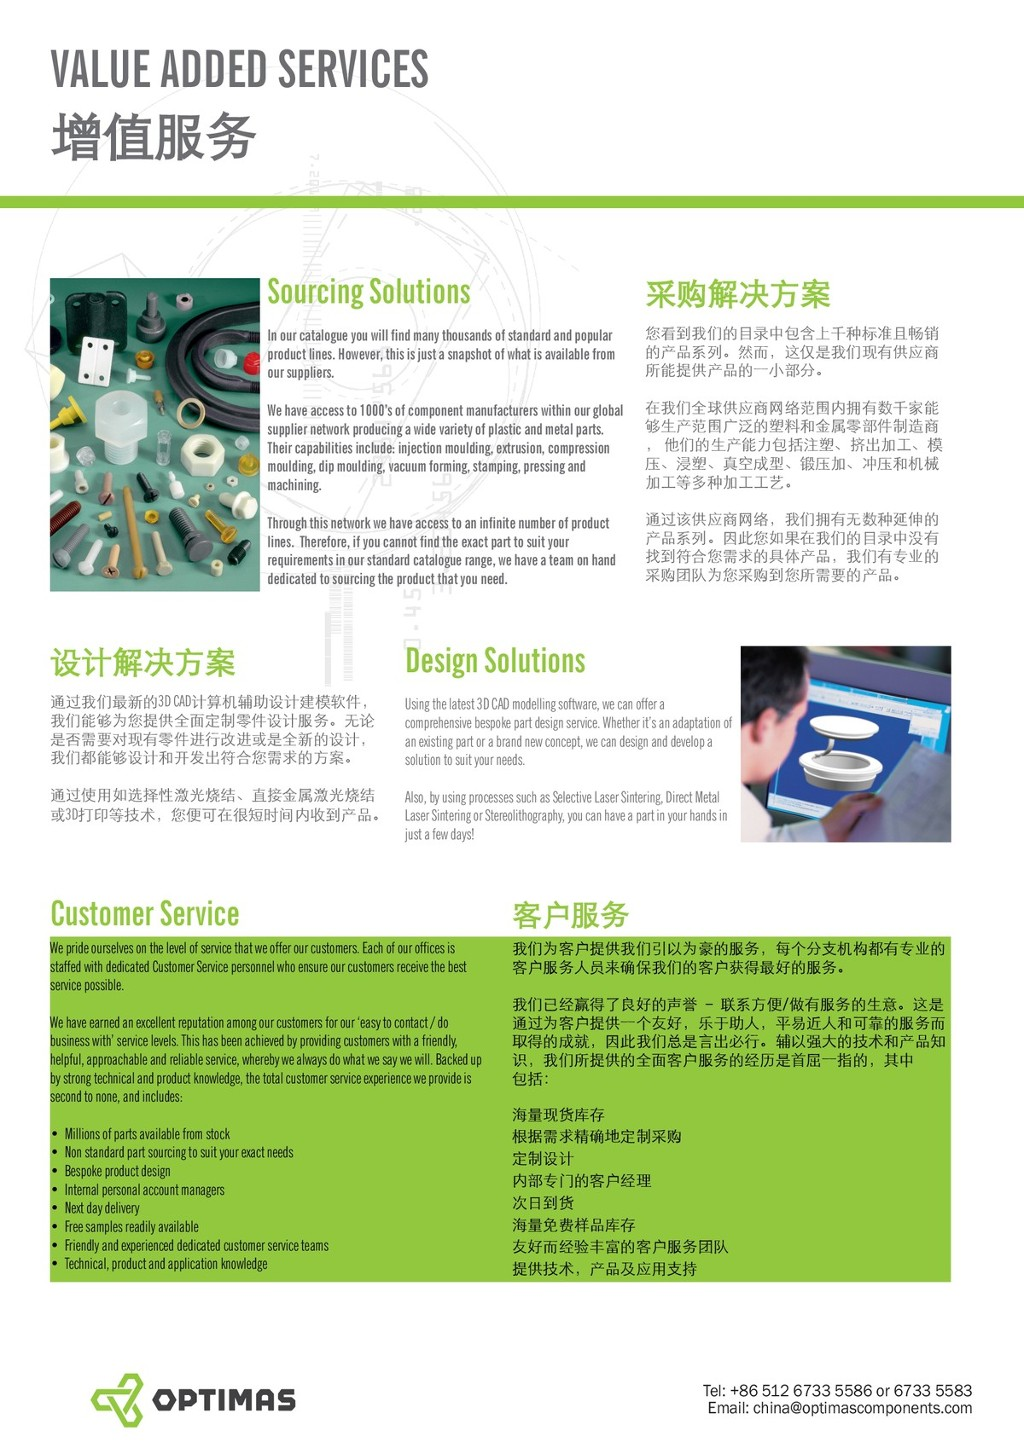 Optimas Oe Solutions Products Overview 2010 11 Printed Circuit Board China Gua Page 4